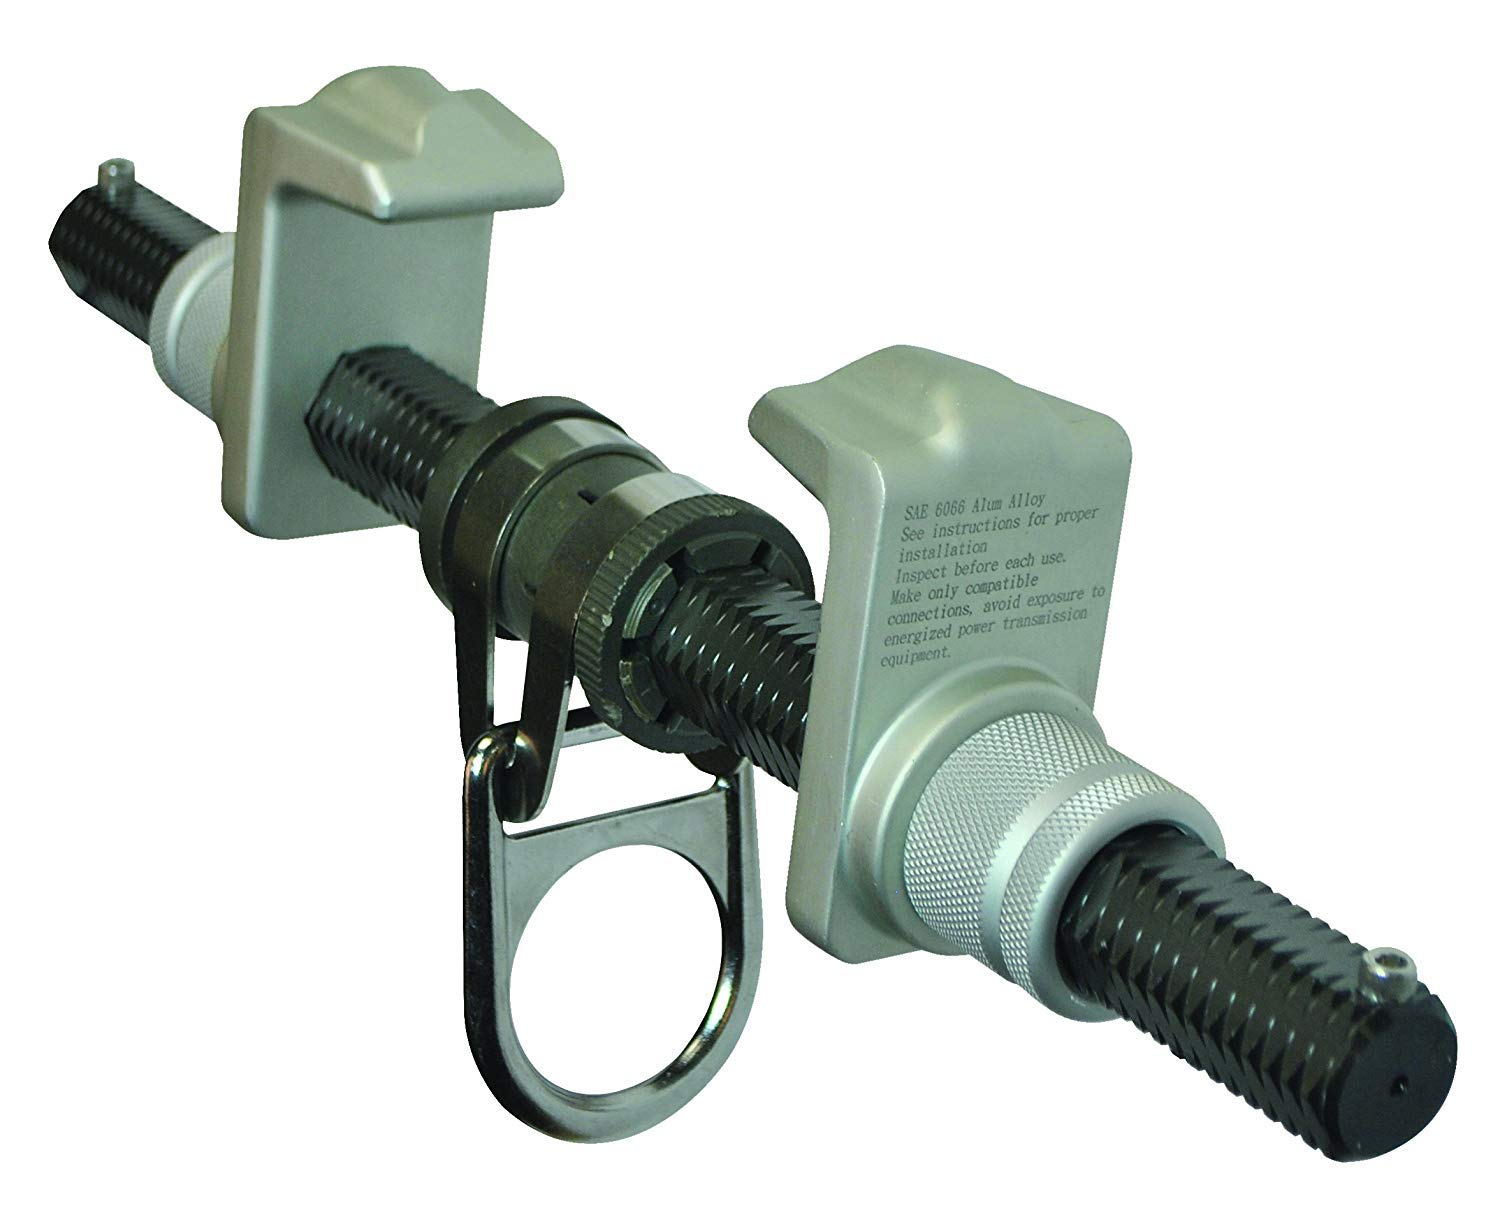 FallTech 7533 Steel, Trailing Beam Clamp Steel - Dual Adjustment for Centering on I-Beam, Aluminum Hex Bar and Jaws, 3'' to 13'', Natural